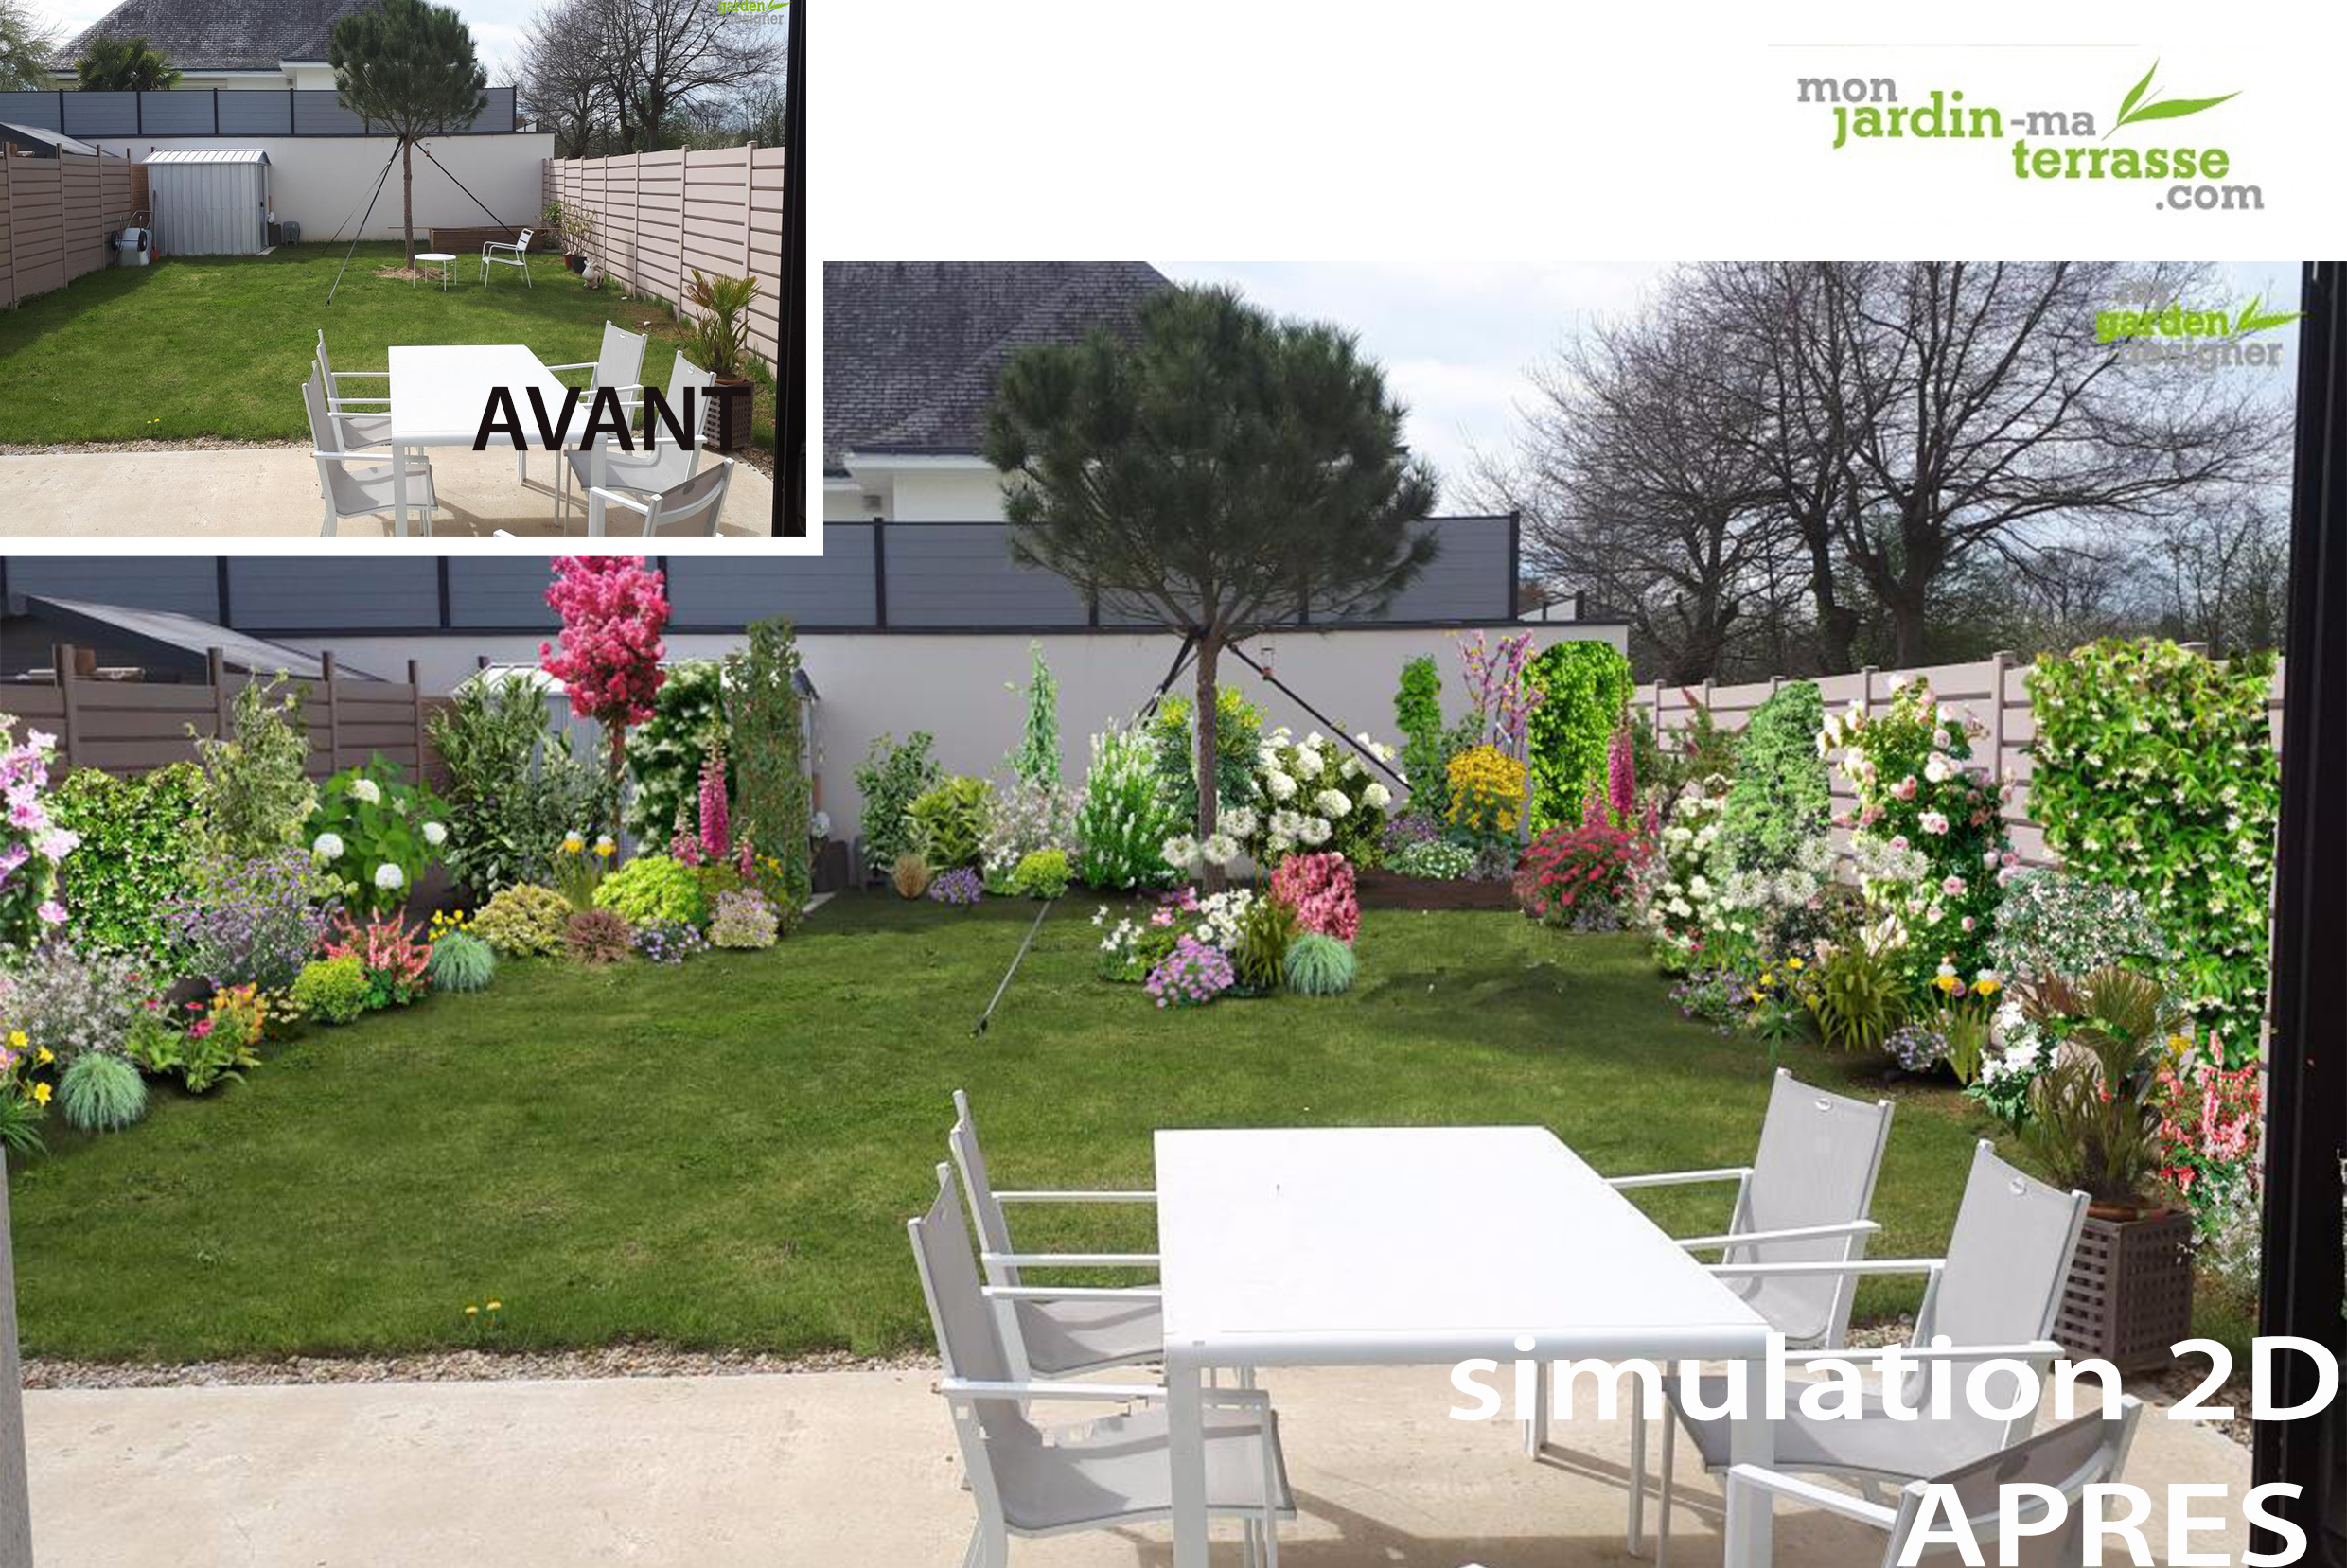 Comment am nager un petit jardin rectangulaire monjardin for Cacher vis a vis jardin